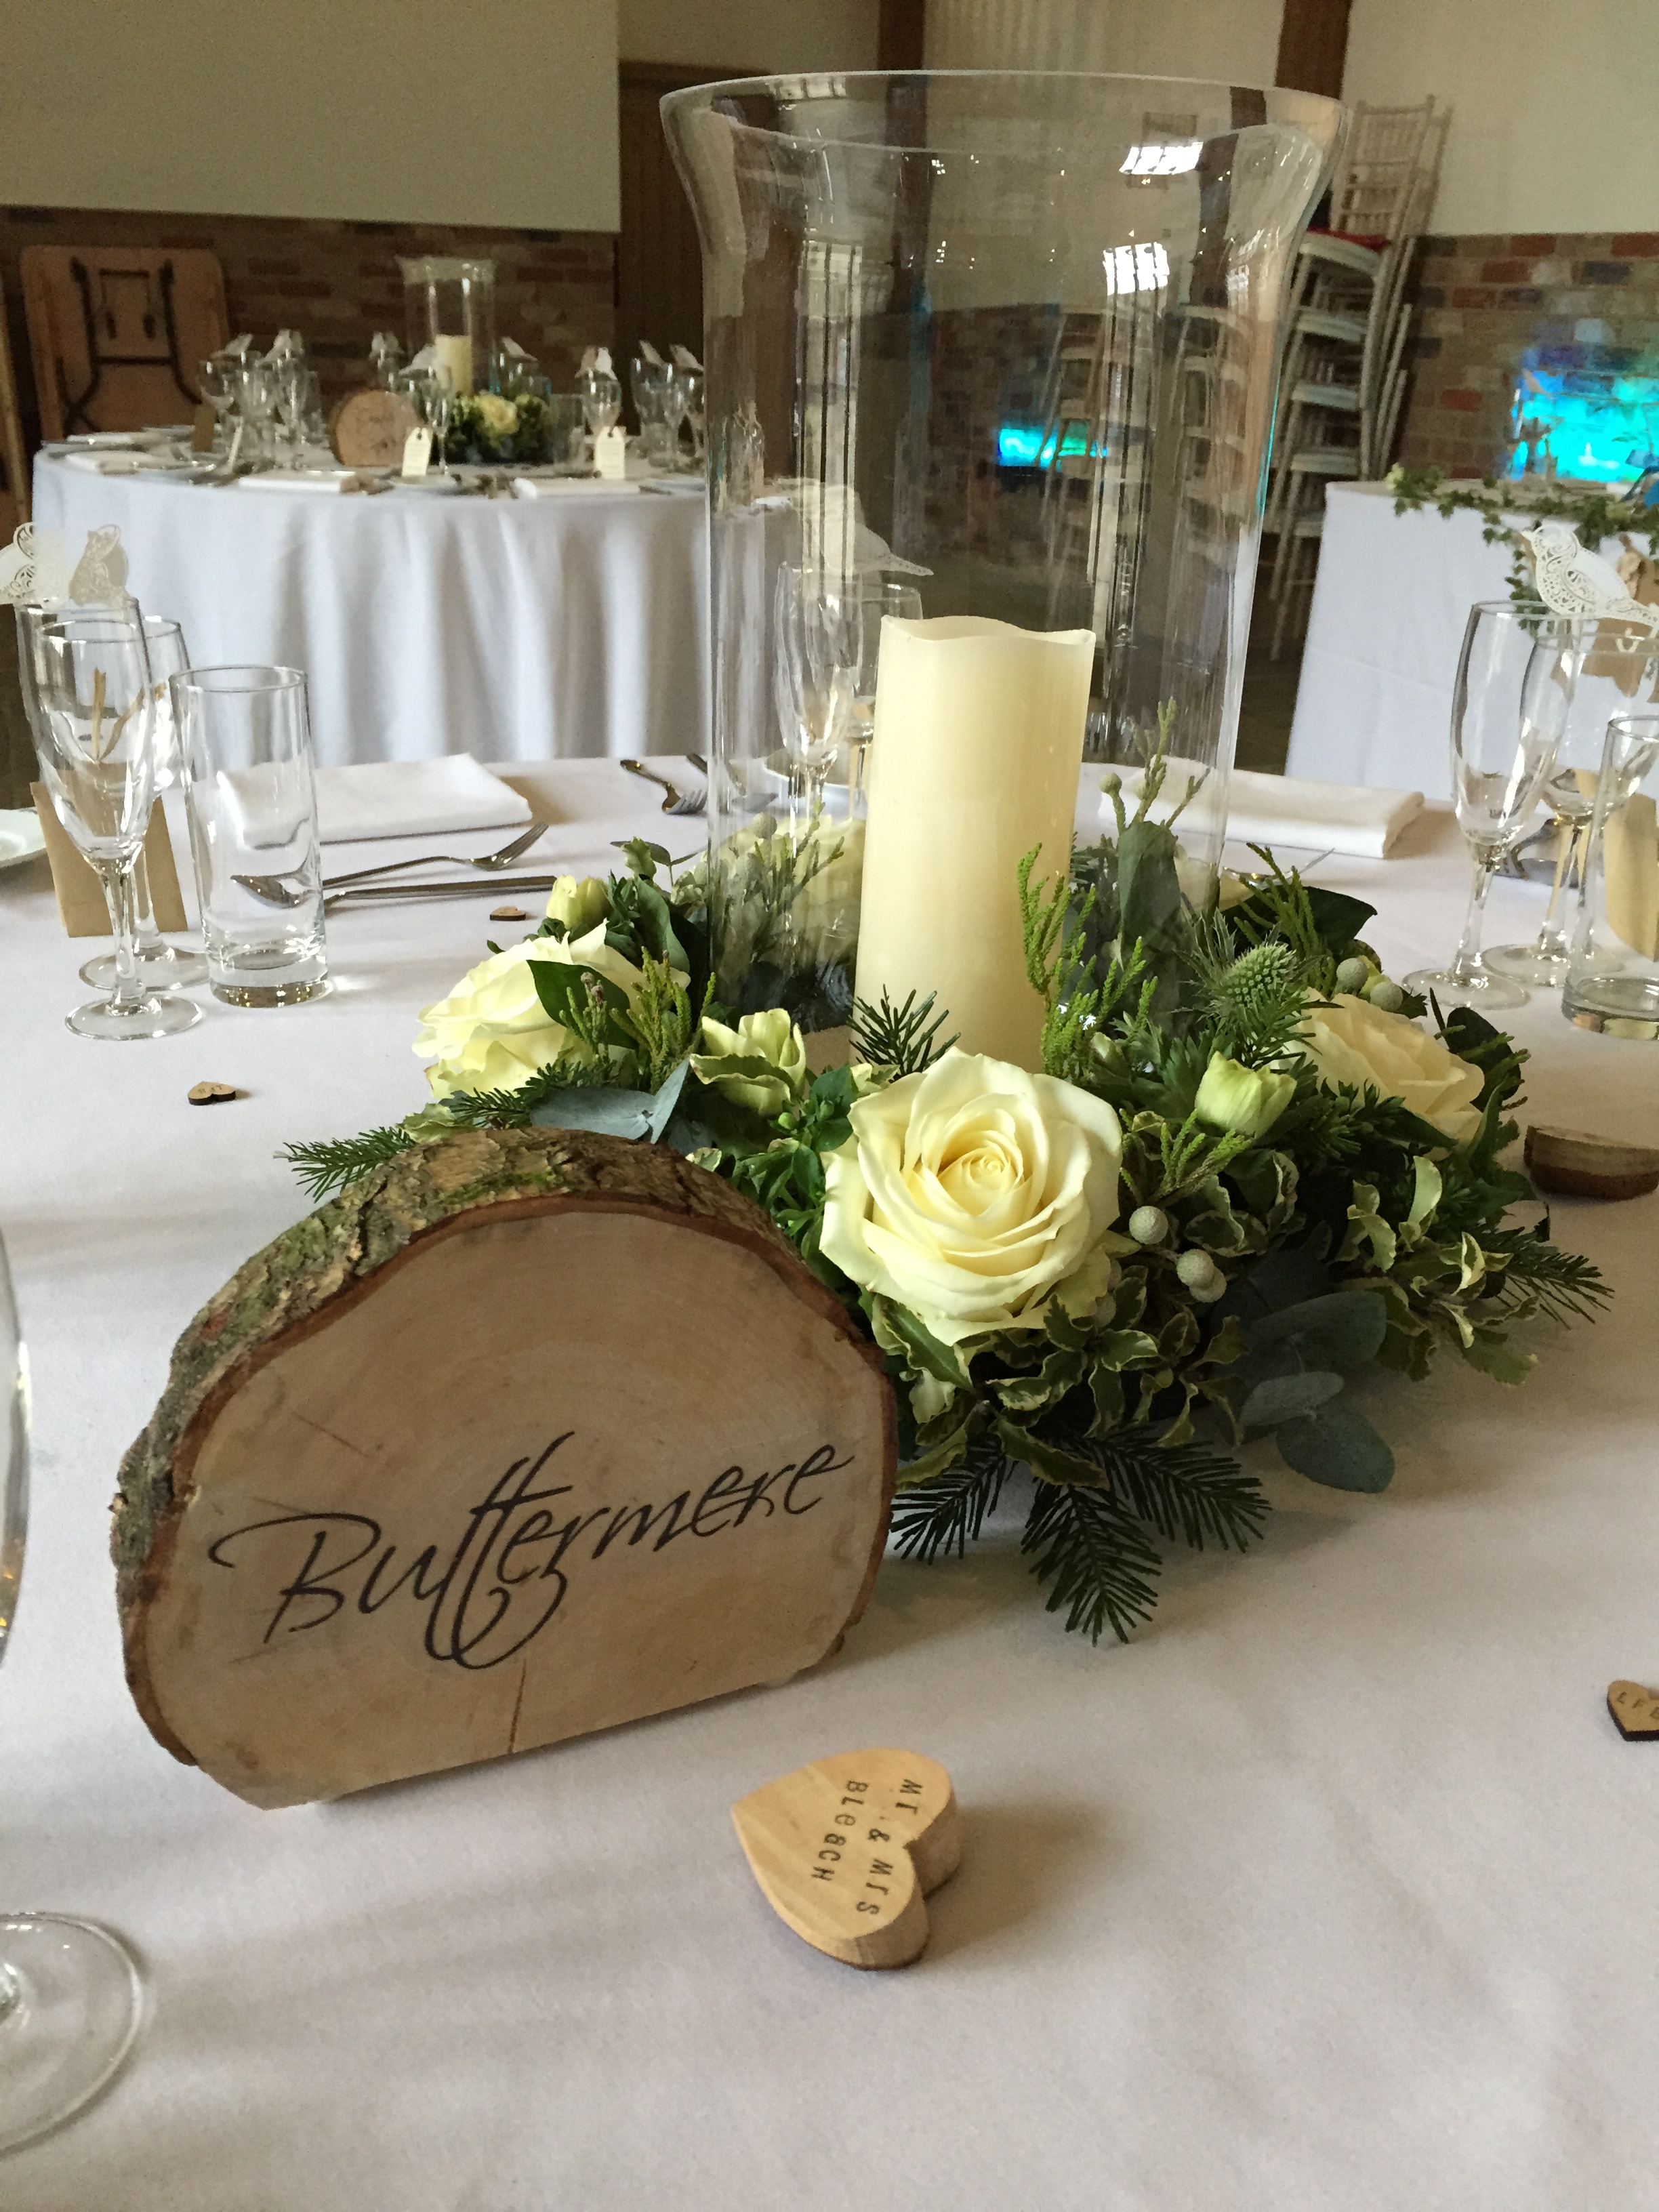 Our log slices can be personalised for your day.  We let you hire the slices and personalise with your name. If interested please  get in touch . The flowers shown were created by the talented Emma from  Wild & Green Florists.